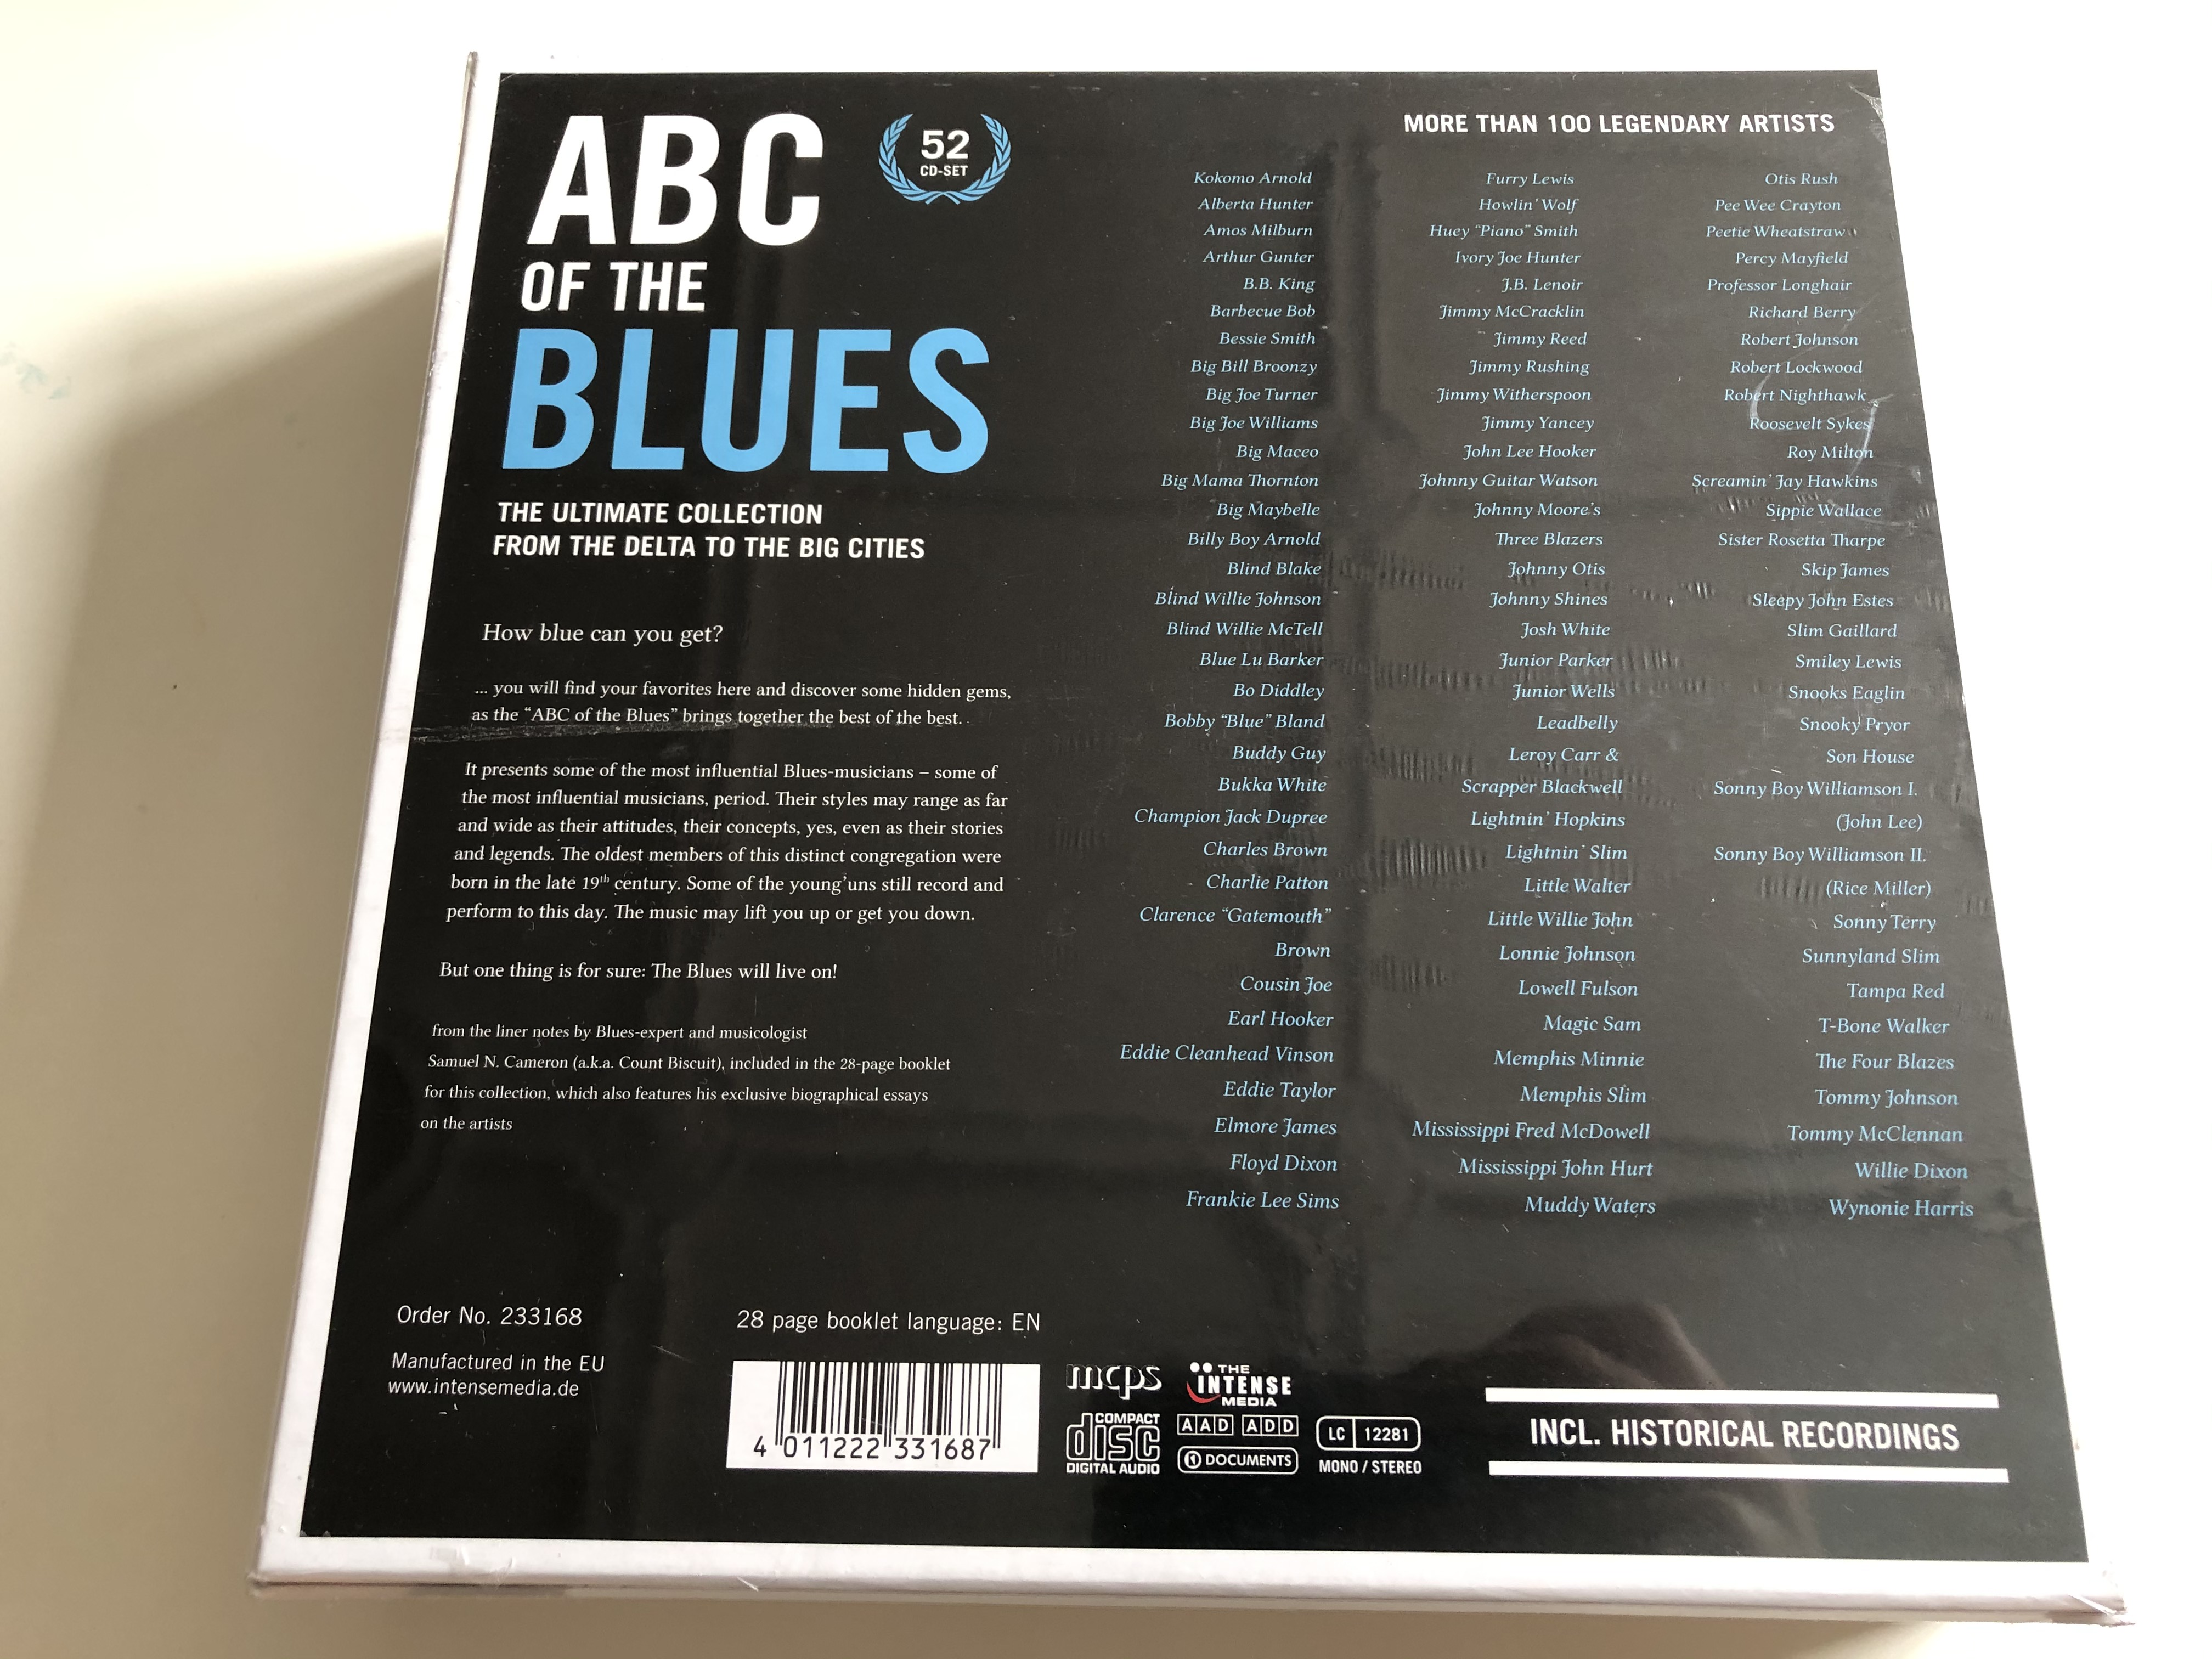 abc-of-the-blues-the-ultimate-collection-from-the-delta-to-the-big-cities-big-bill-broonzy-bo-diddley-howlin-wolf-leadbelly-bessie-smith-big-joe-turner-muddy-waters-bukka-white-docum-4-.jpg